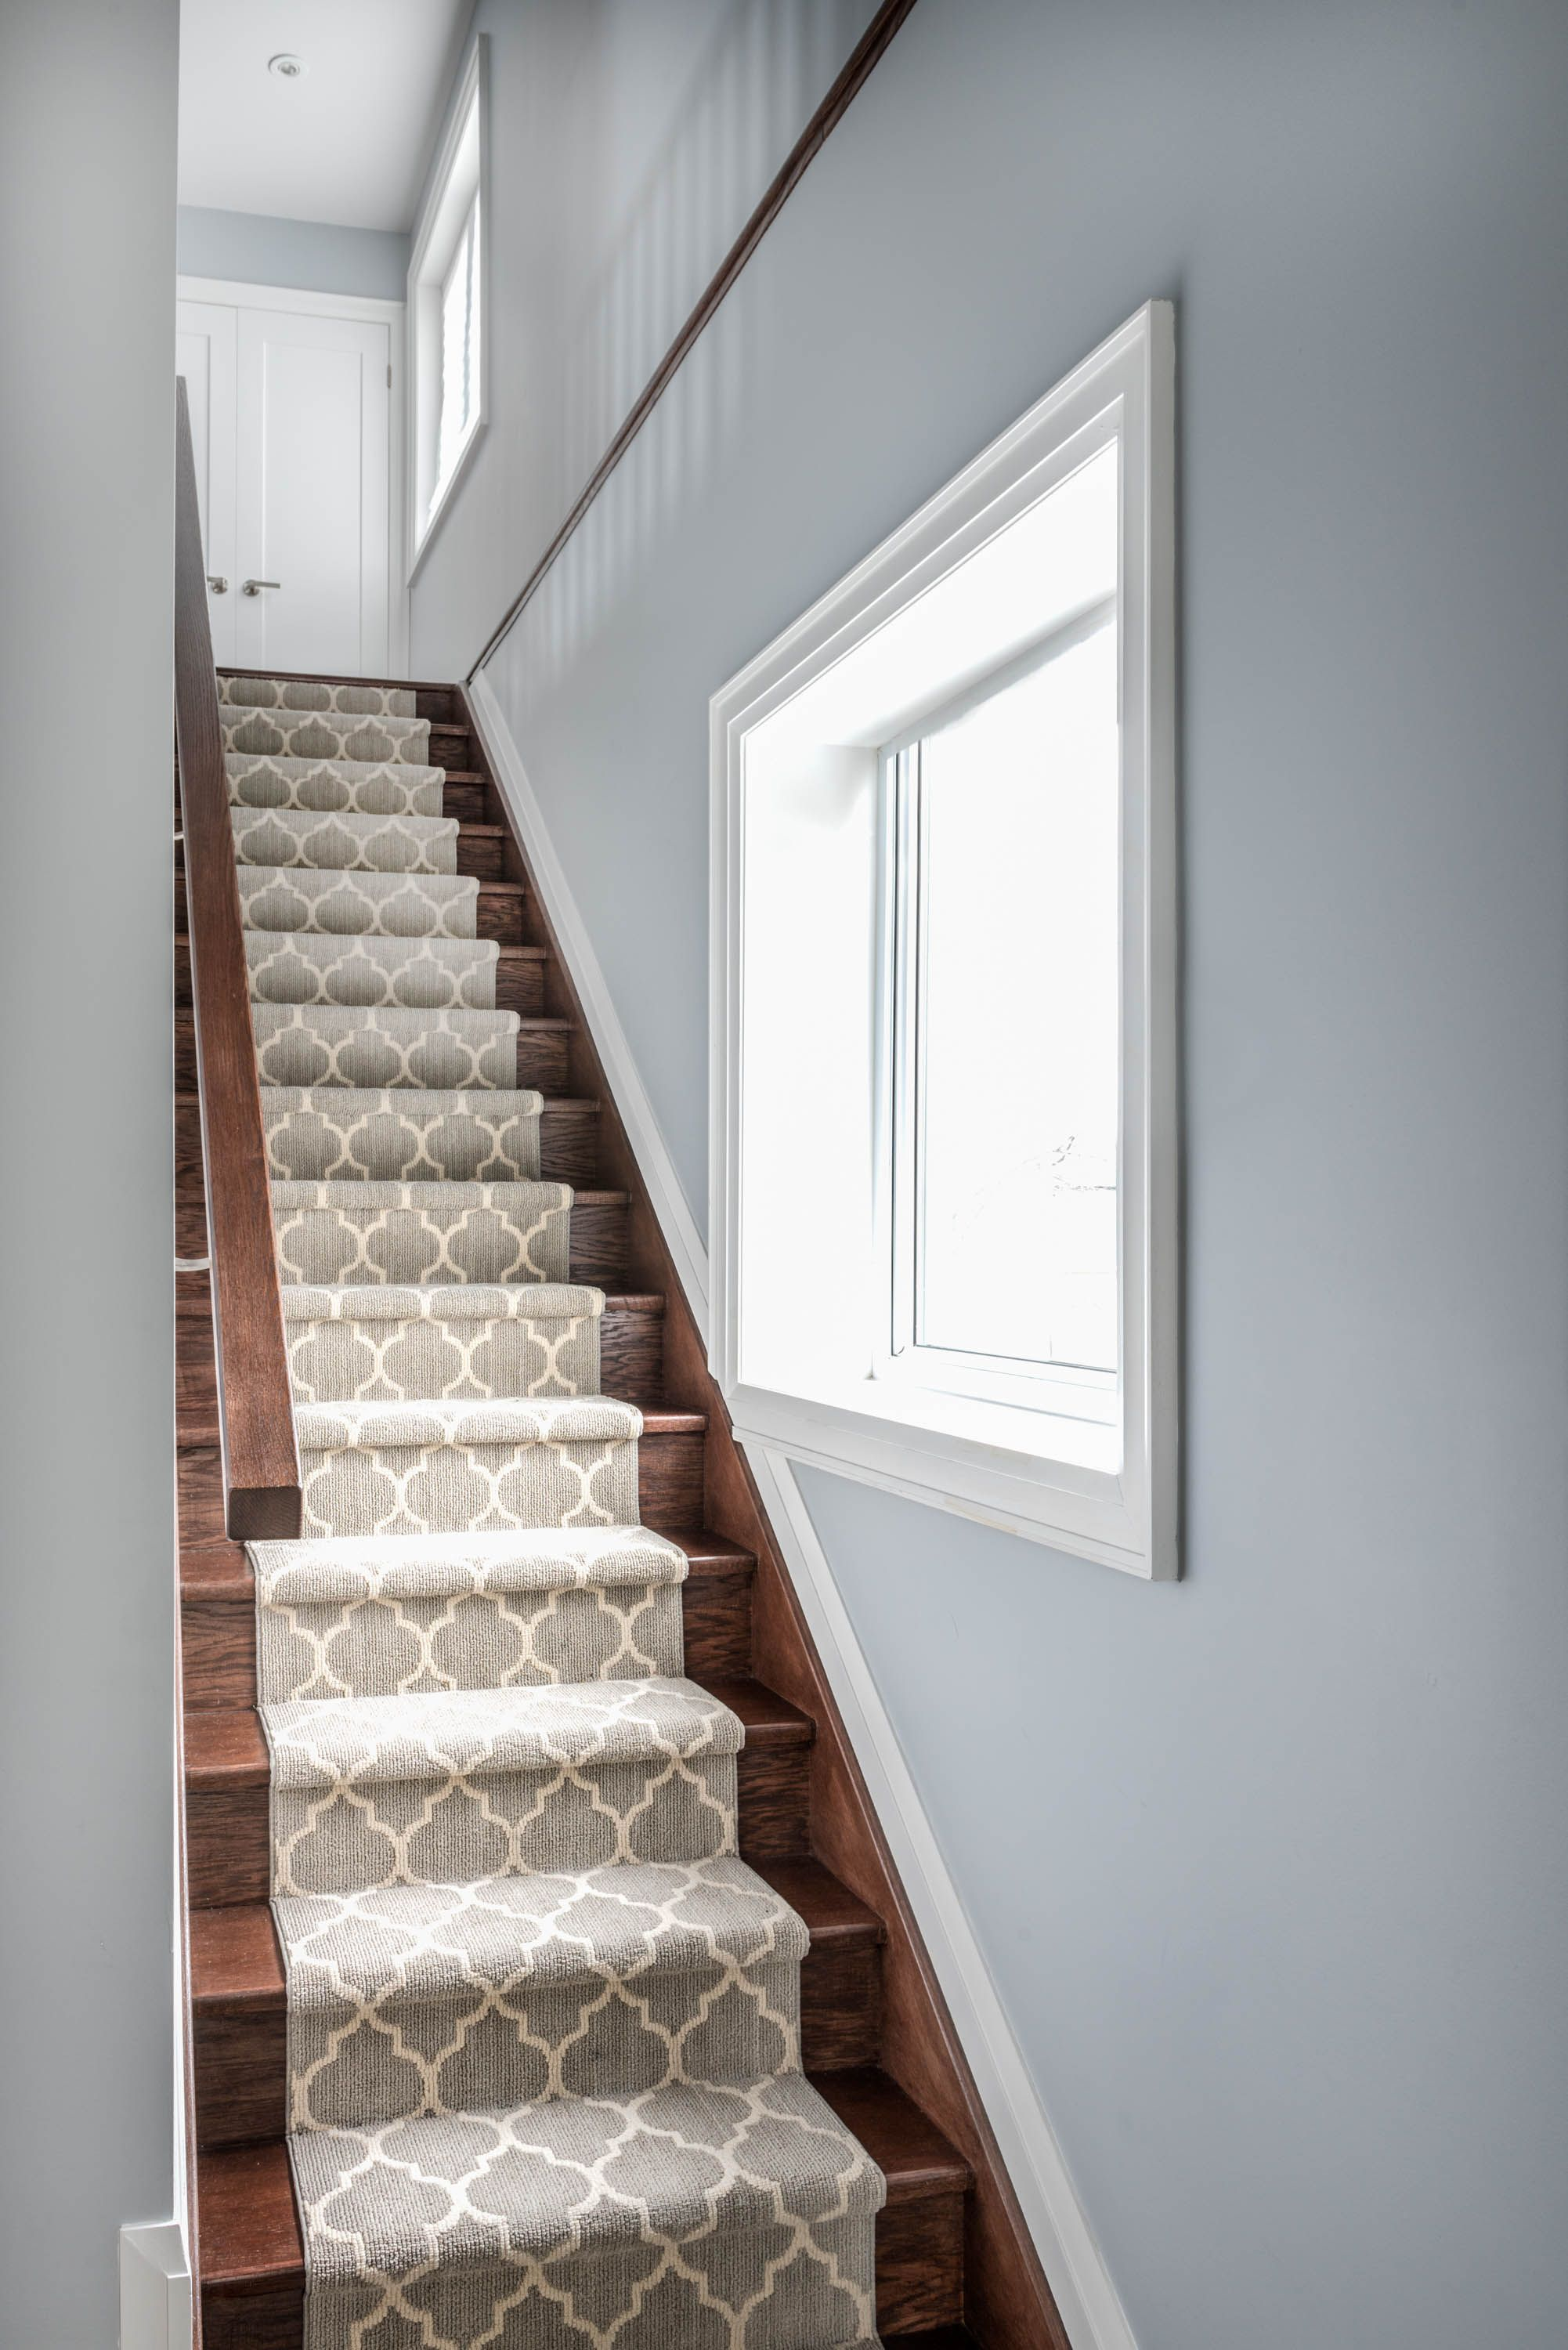 White And Grey Pattern Runner On Wooden Stairs Rtg